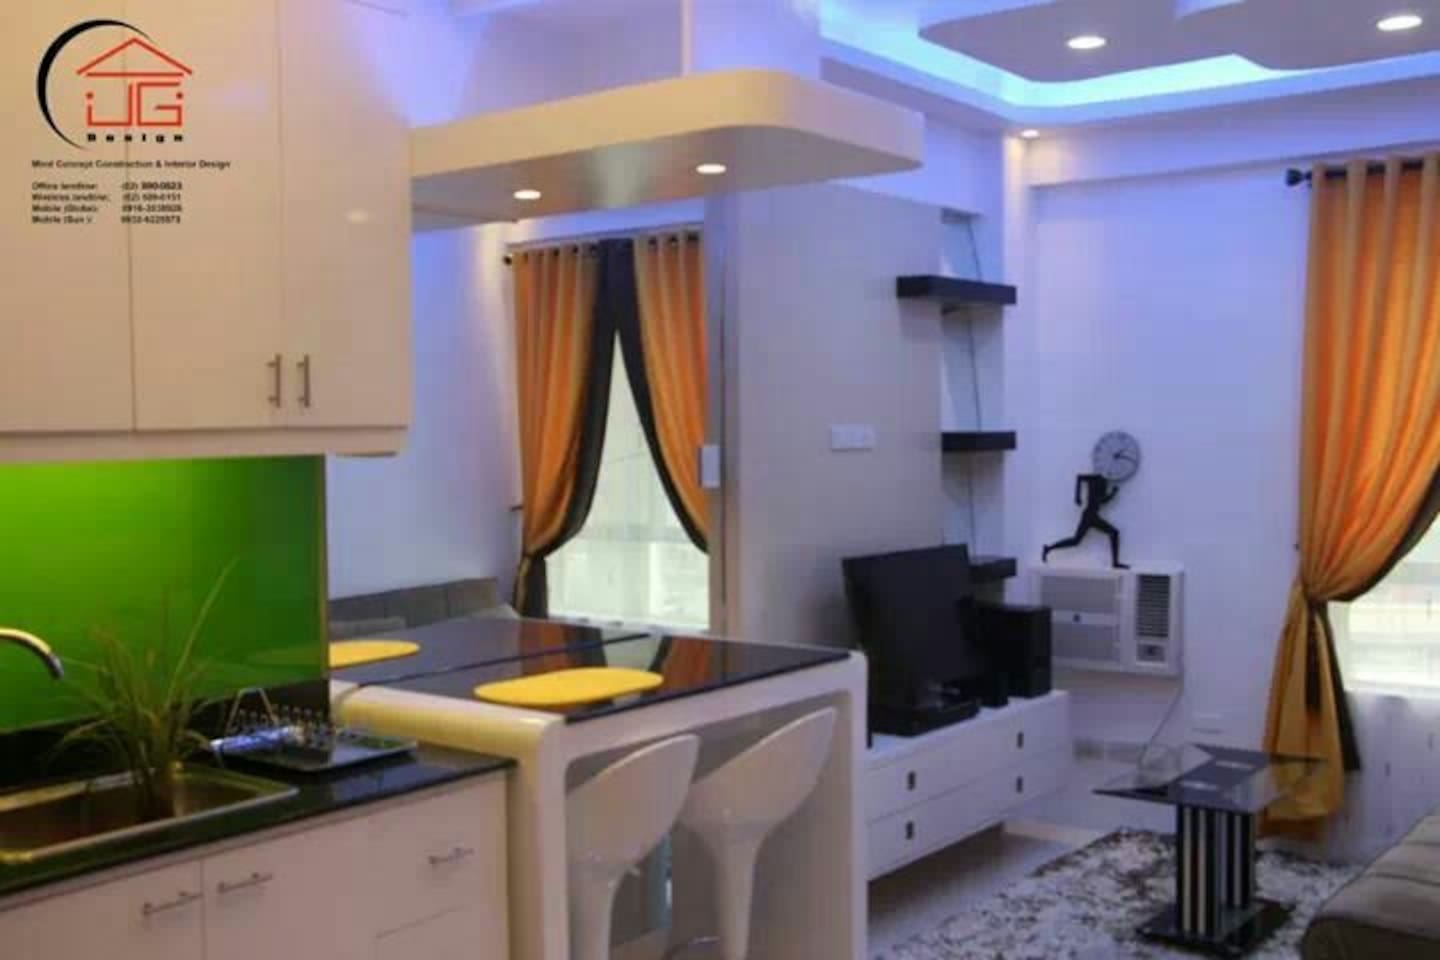 Condo Unit for Rent- One bedroom Fully Furnished